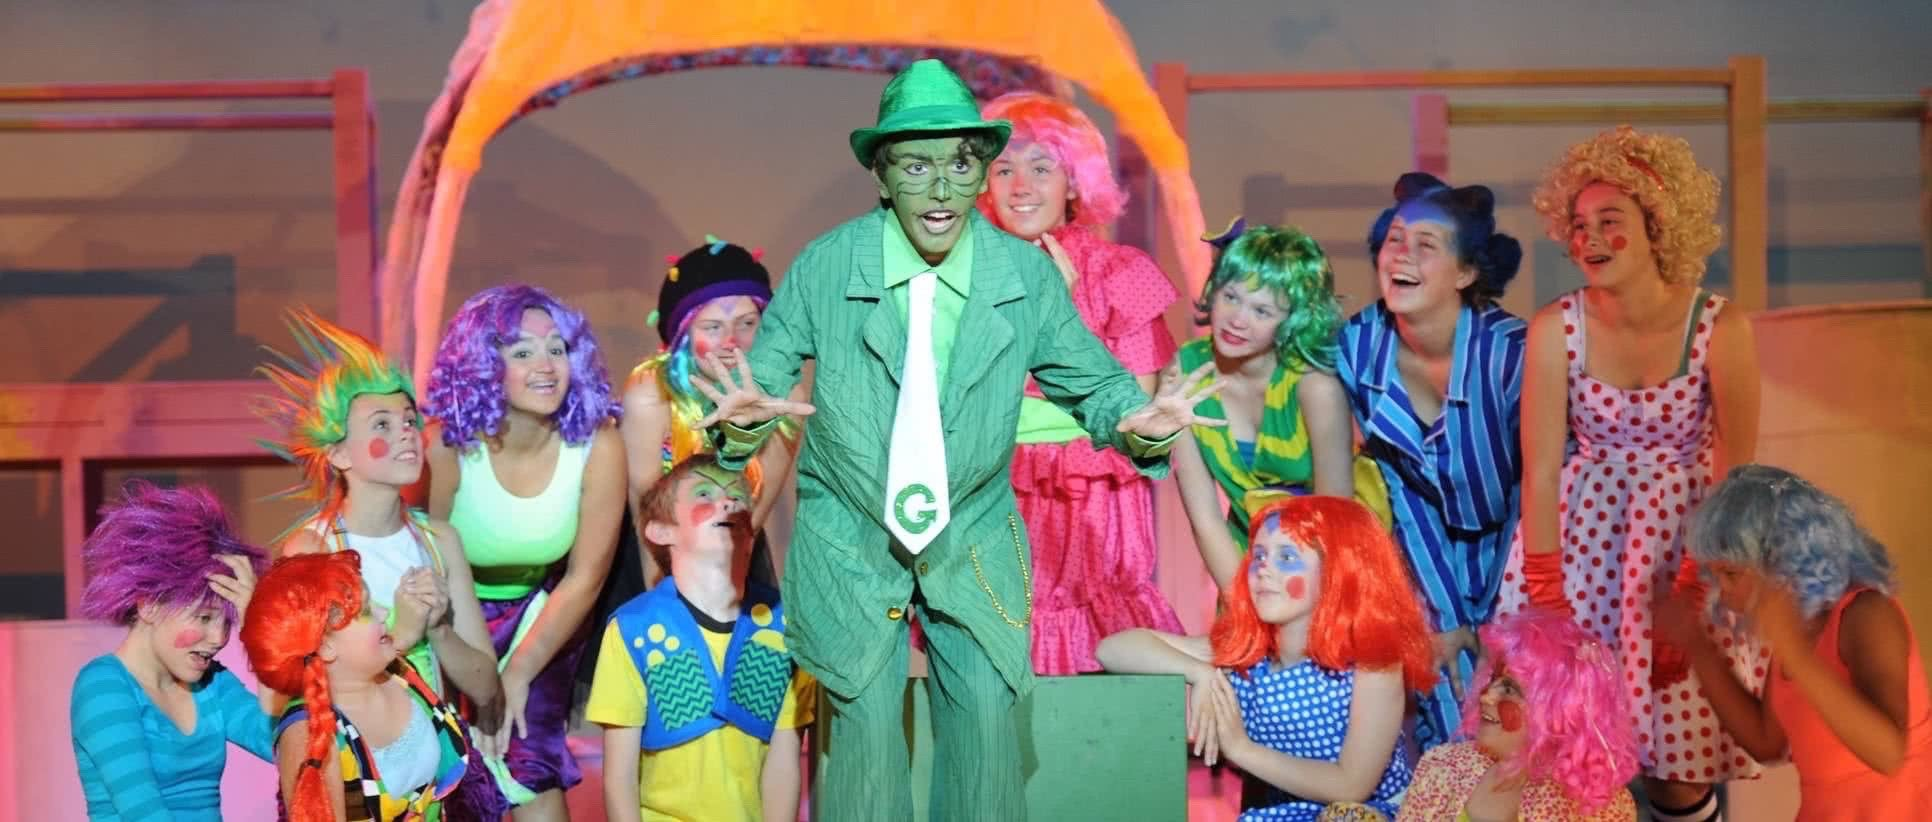 Tomorrow Youth Rep Banner image, from Seussical, 2015